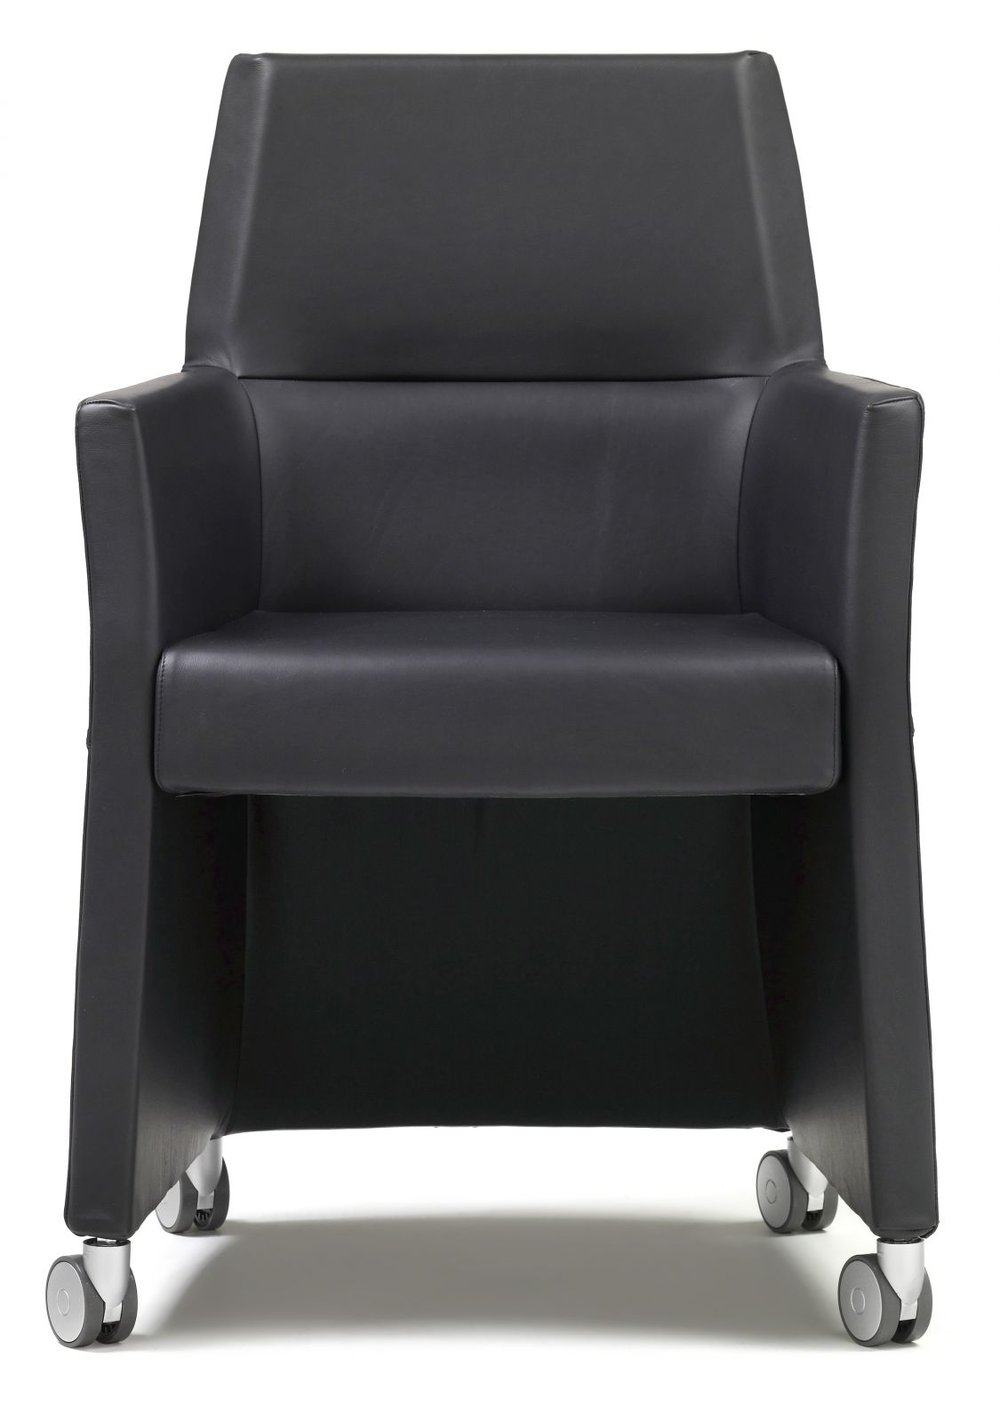 MOF 23 Modern Office Chair